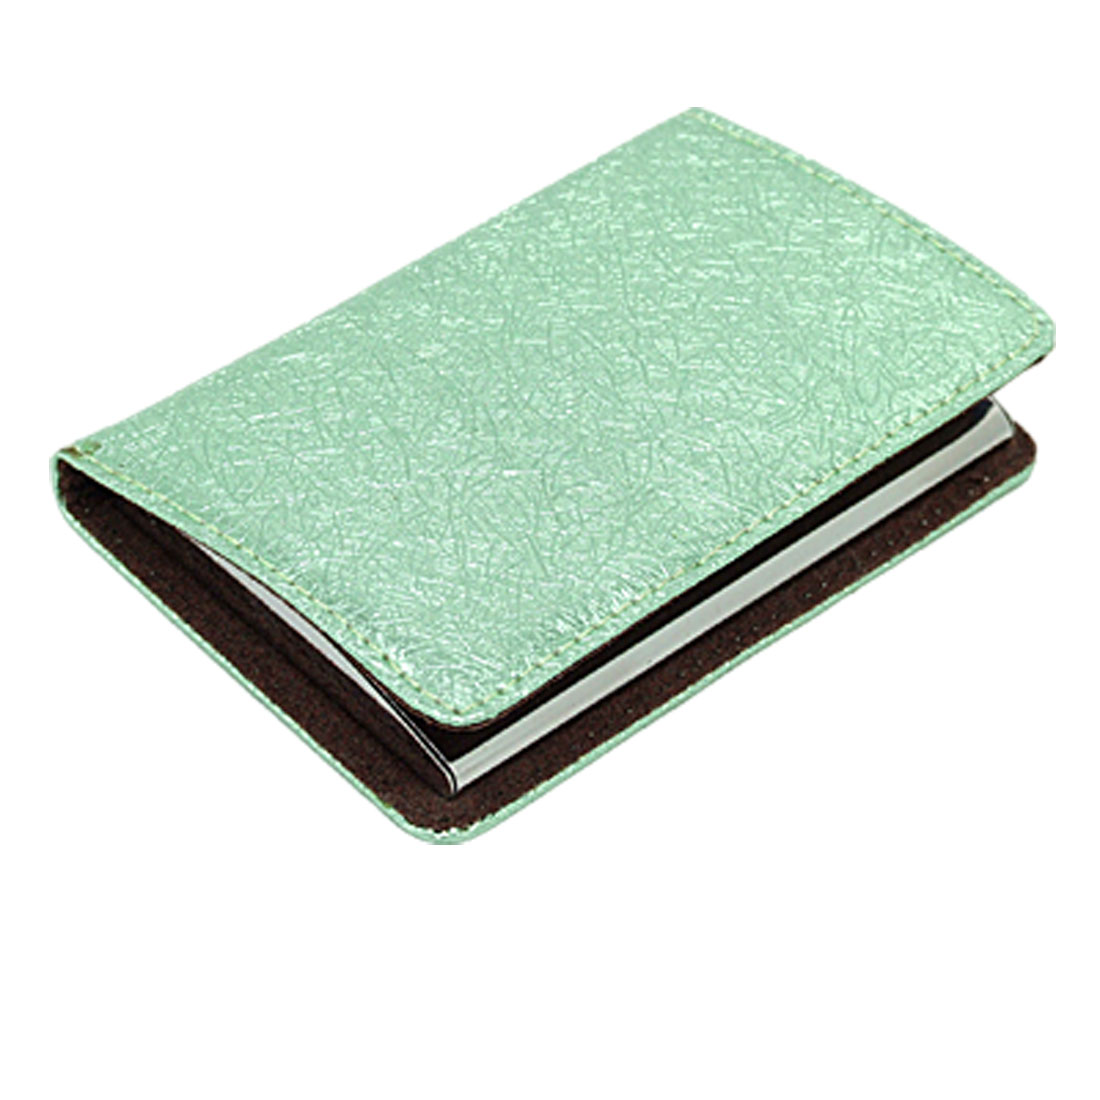 Green Lady's Card Holder for Business Card Credit Card